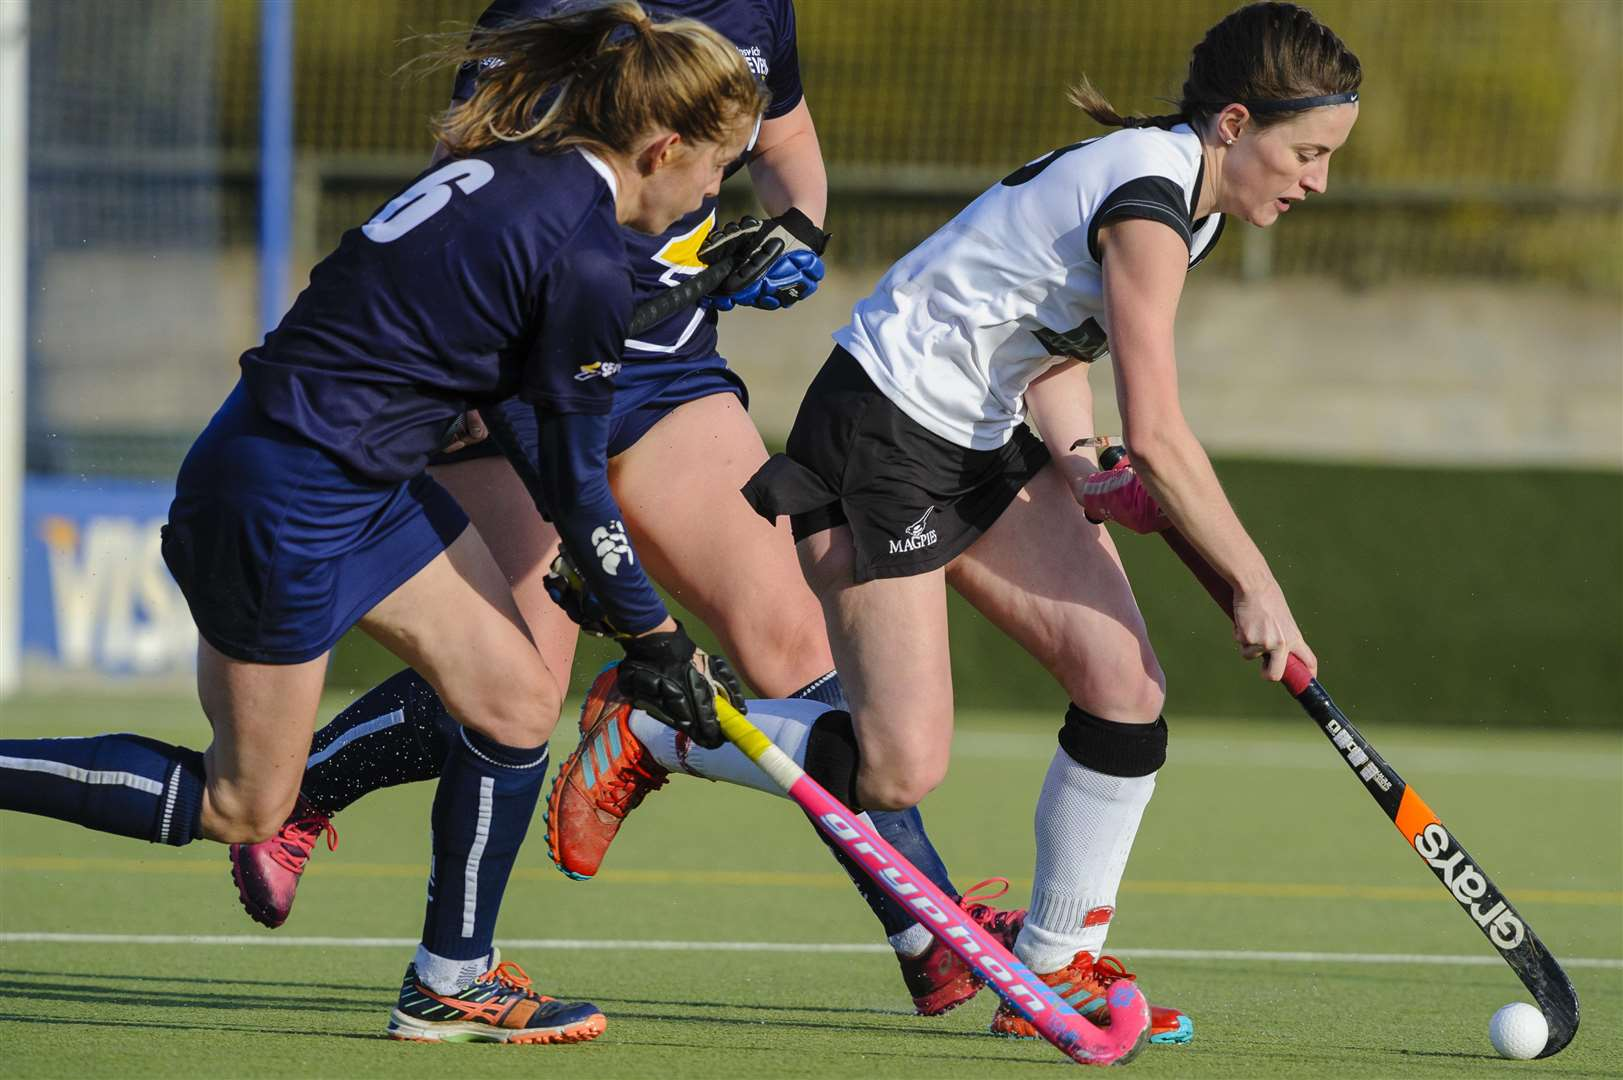 Weybread, Suffolk, UK, 03 November 2018..Hockey action from Harleston Magpies Ladies I v Ipswich, Lizzie Clymer. ..Picture: Mark Bullimore Photography. (5187840)